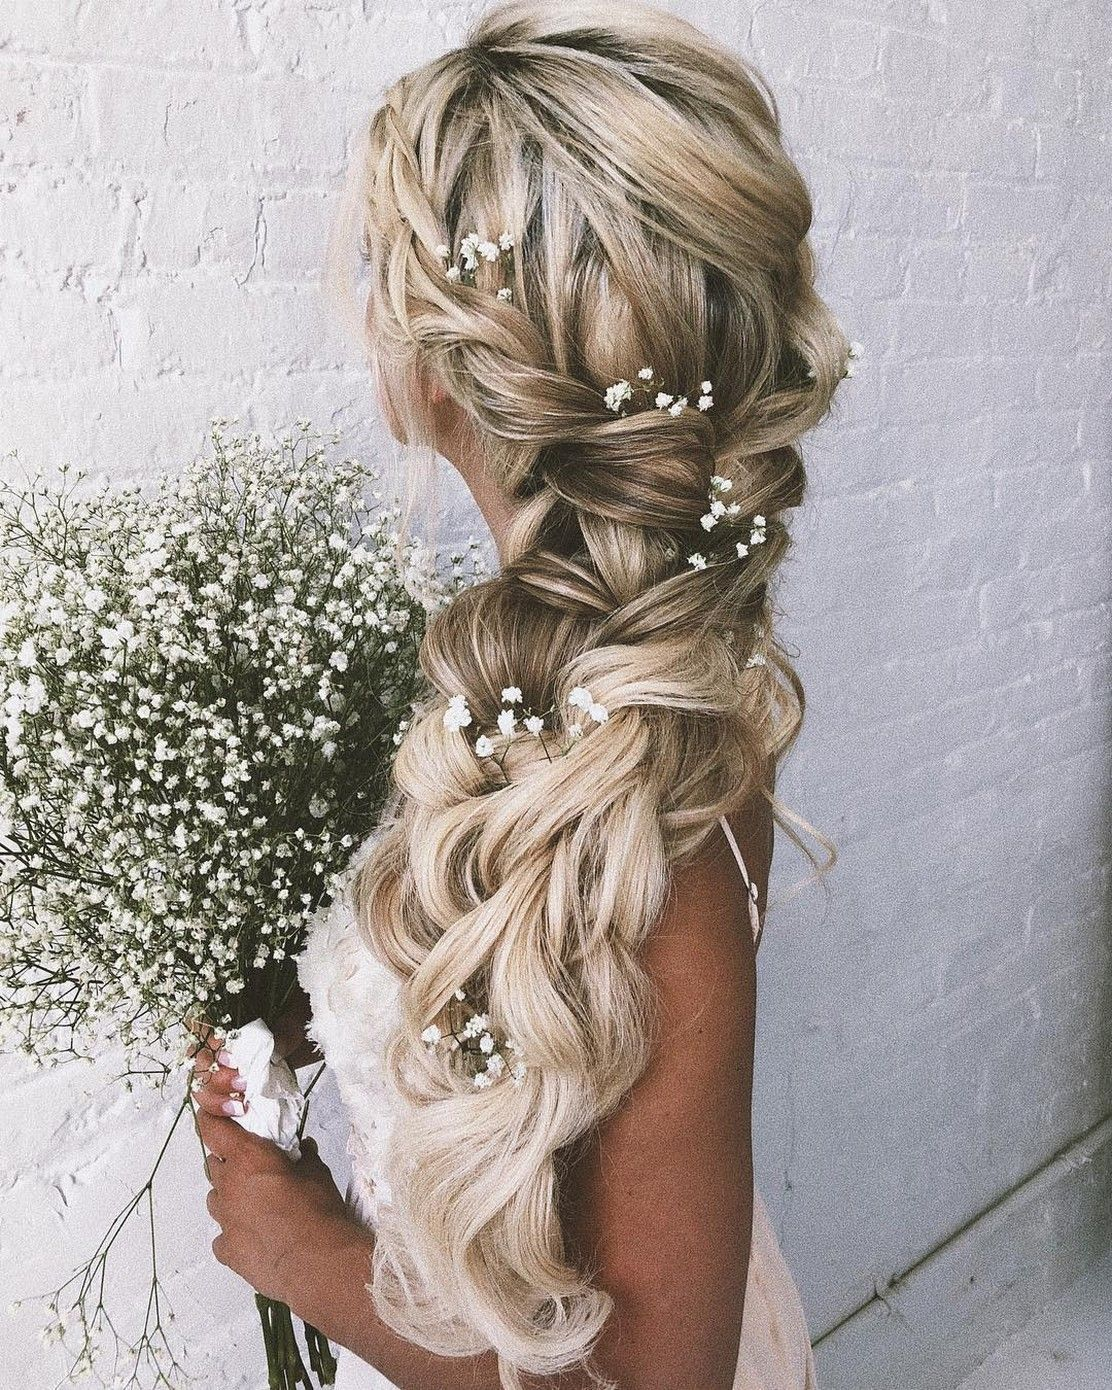 50 Styles Of Fishtail Braid To Inspire You Wedding Hairstyles Braided Hairstyles For Wedding Braids For Long Hair Wedding Hair Inspiration